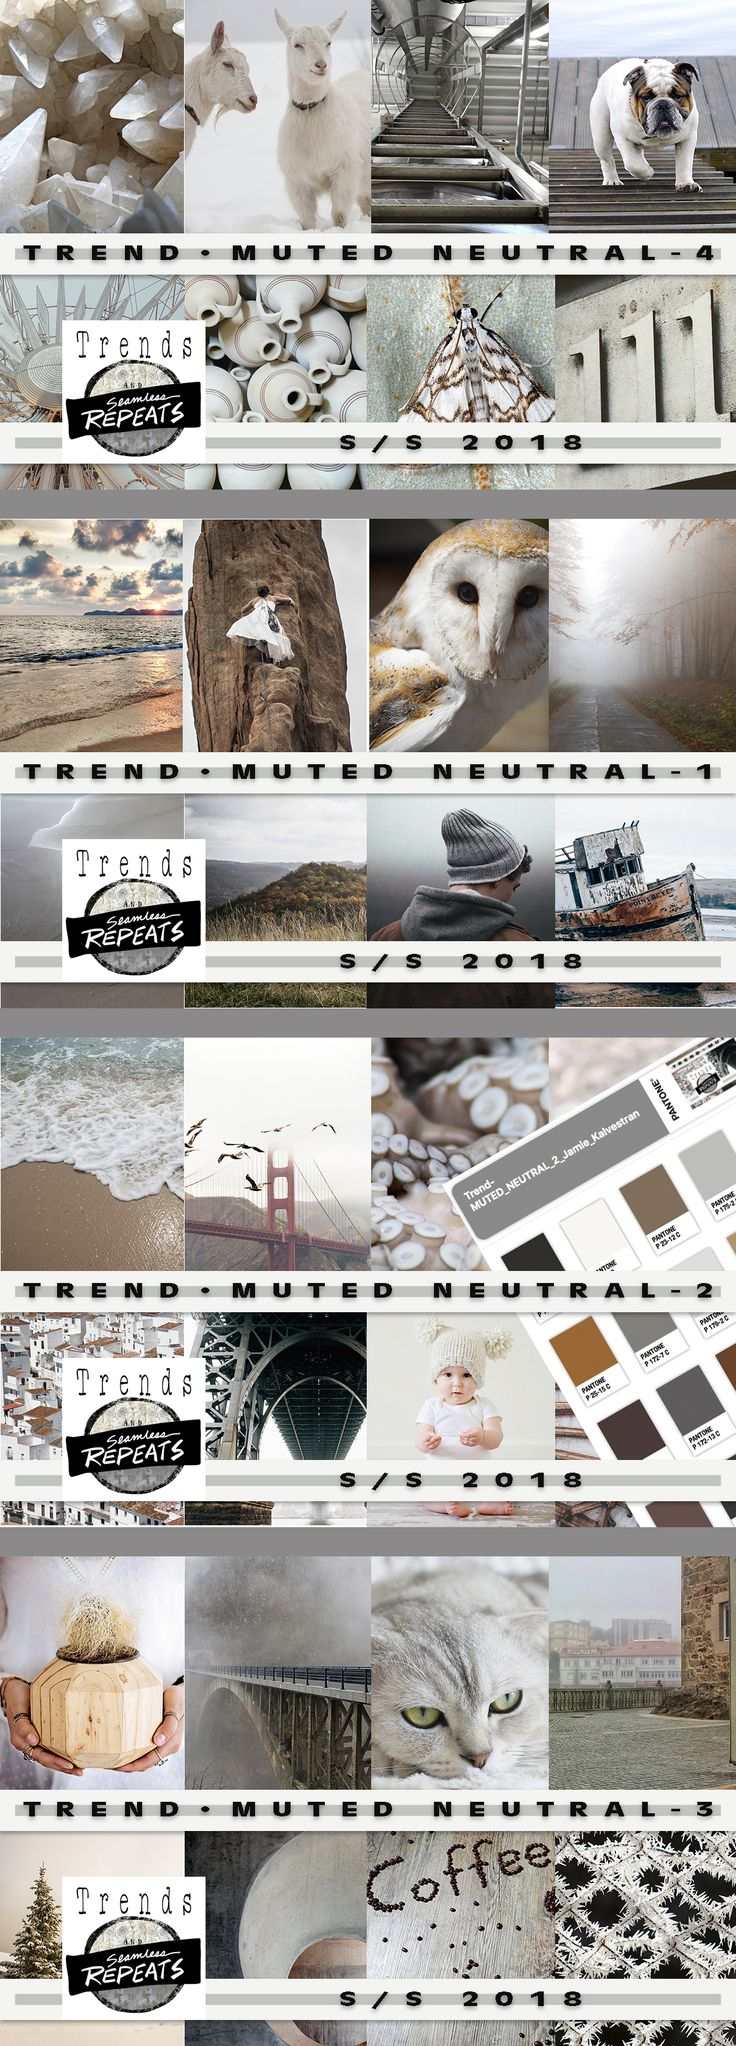 TREND - Muted Neutrals Everything you need to create your own trend board, mood board or other presentation or product.      78 - Creative Commons CC0 Images - average size approximately 1200px x 1900px     4 - Pantone Color Palettes (CMYK - Coated)     4 - CMYK (Pantone Color Bridge) .aco files for each color palette